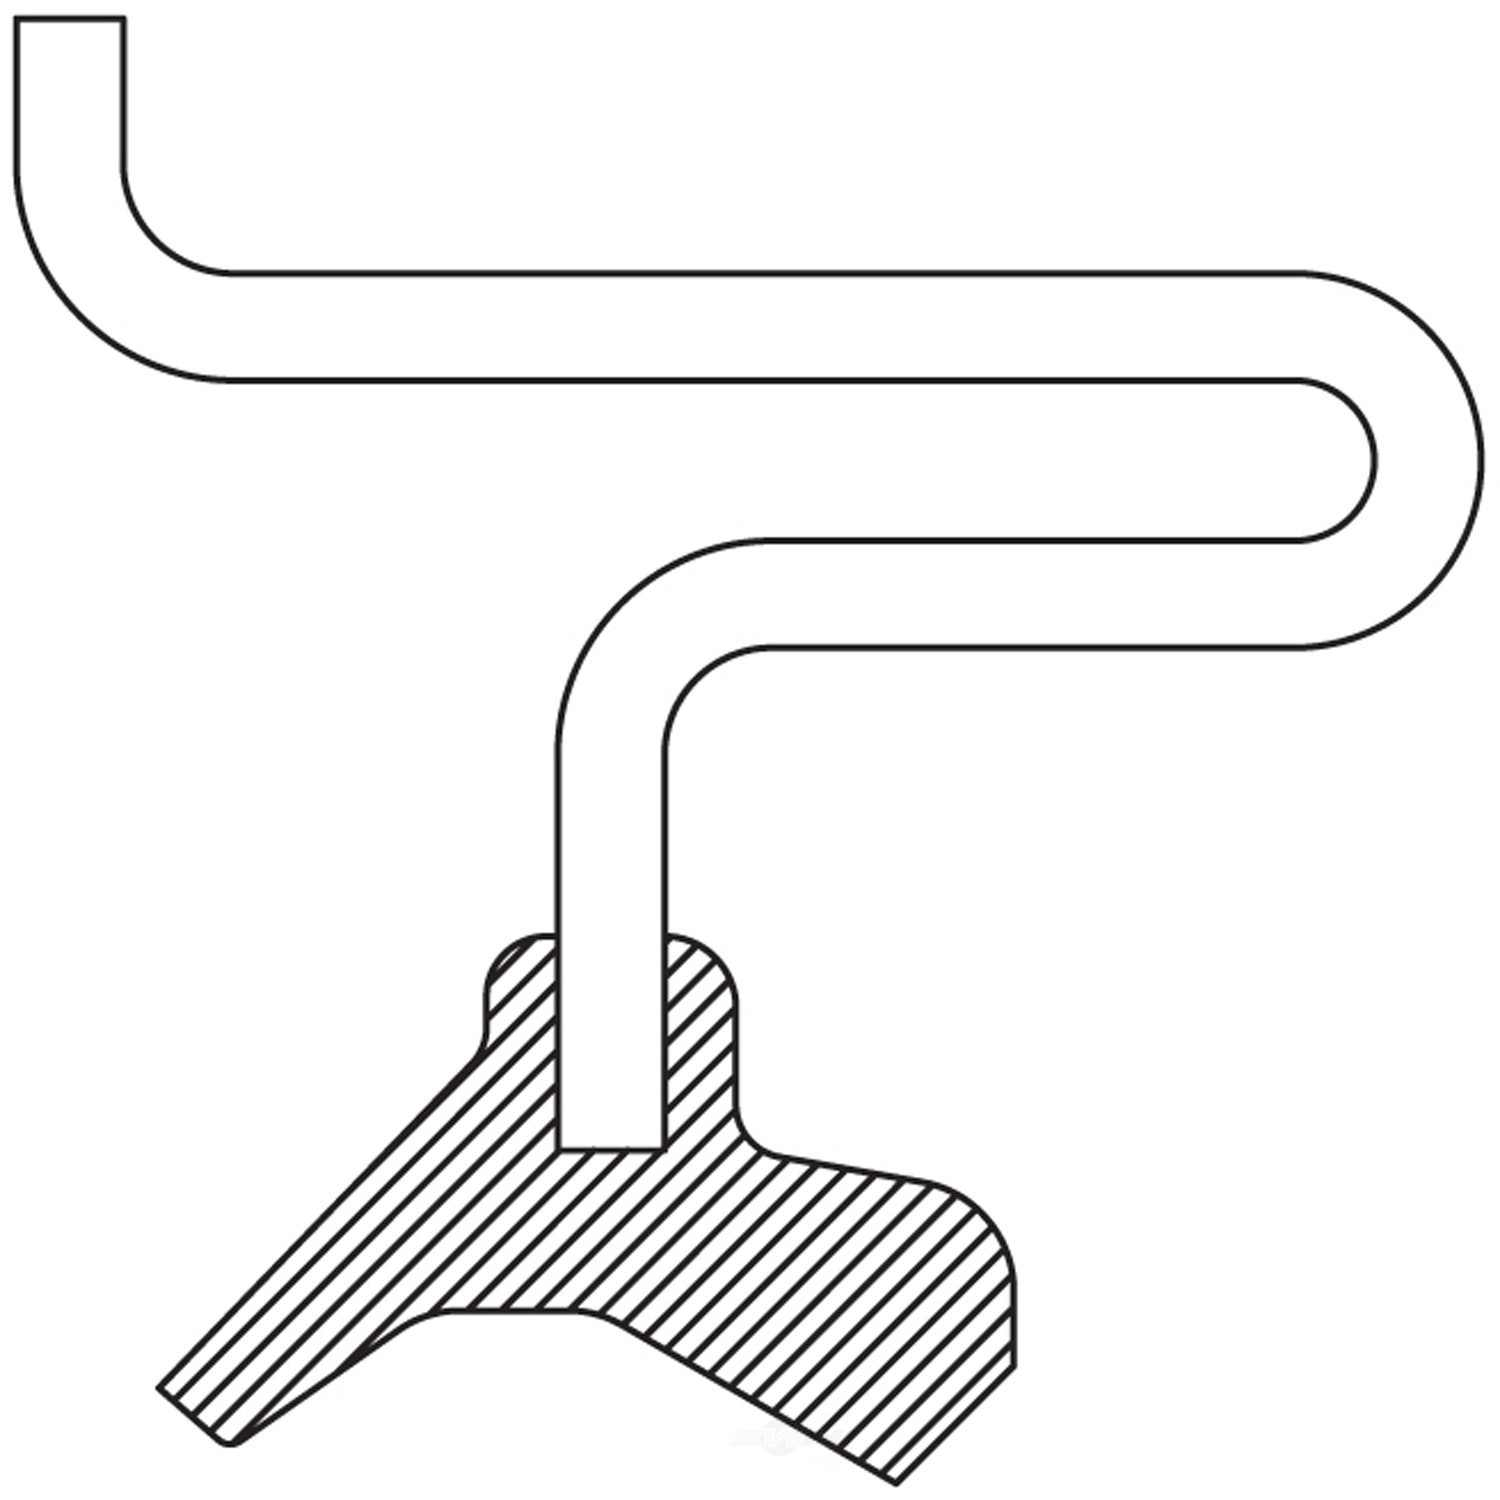 NATIONAL SEALS - Axle Spindle Seal - NAT 710455